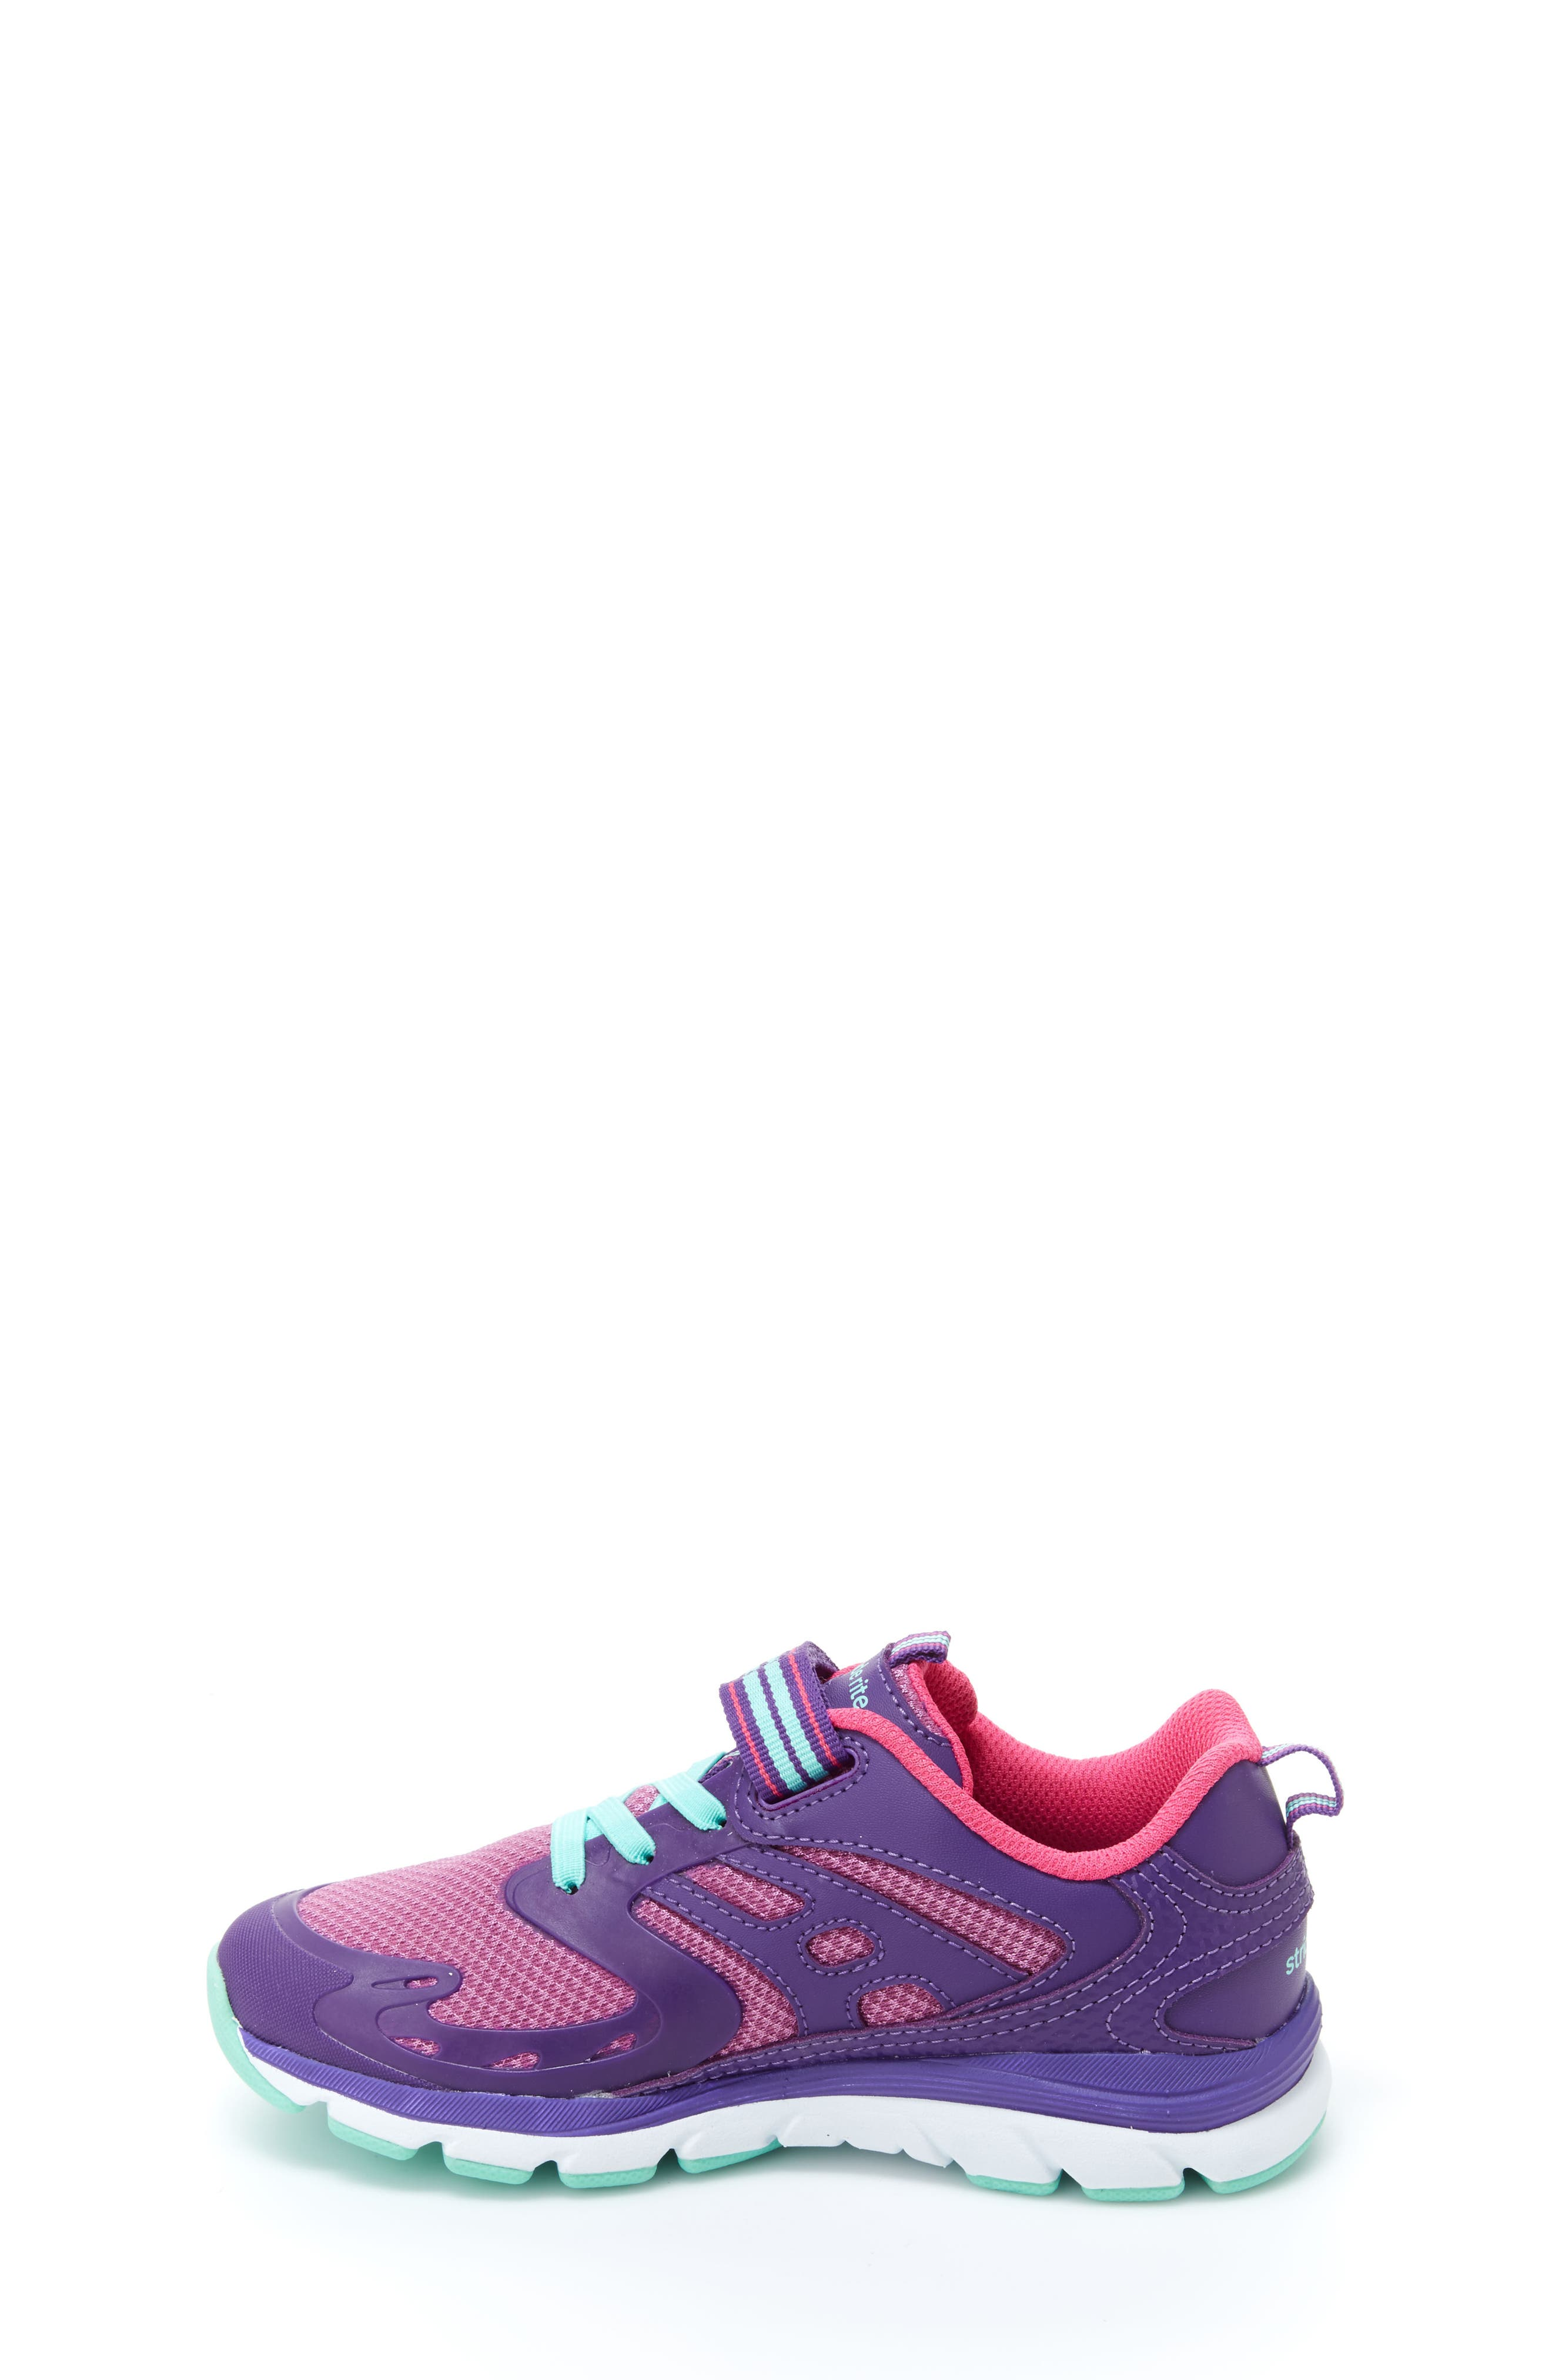 'Made2Play<sup>®</sup> Cannan Lace' Sneaker,                             Alternate thumbnail 8, color,                             500